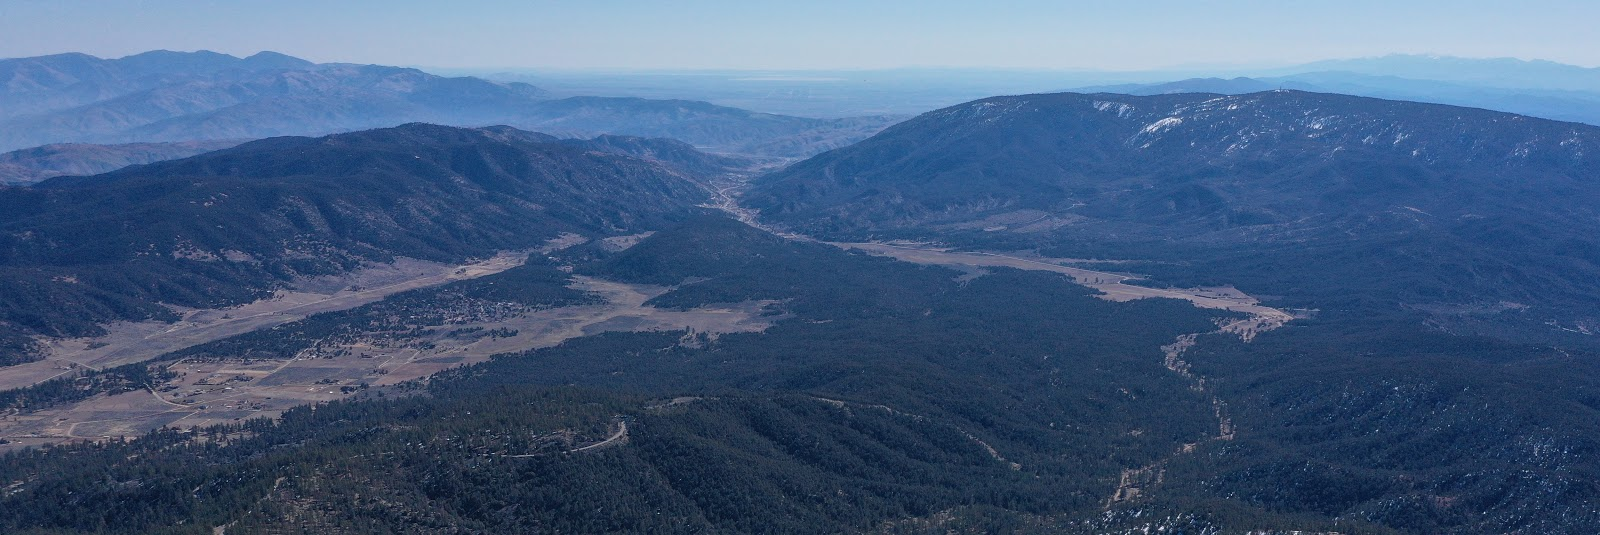 Cycling Mt. Pinos - aerial drone photo of  Mountains, Frazier Mountain Park Road, valley